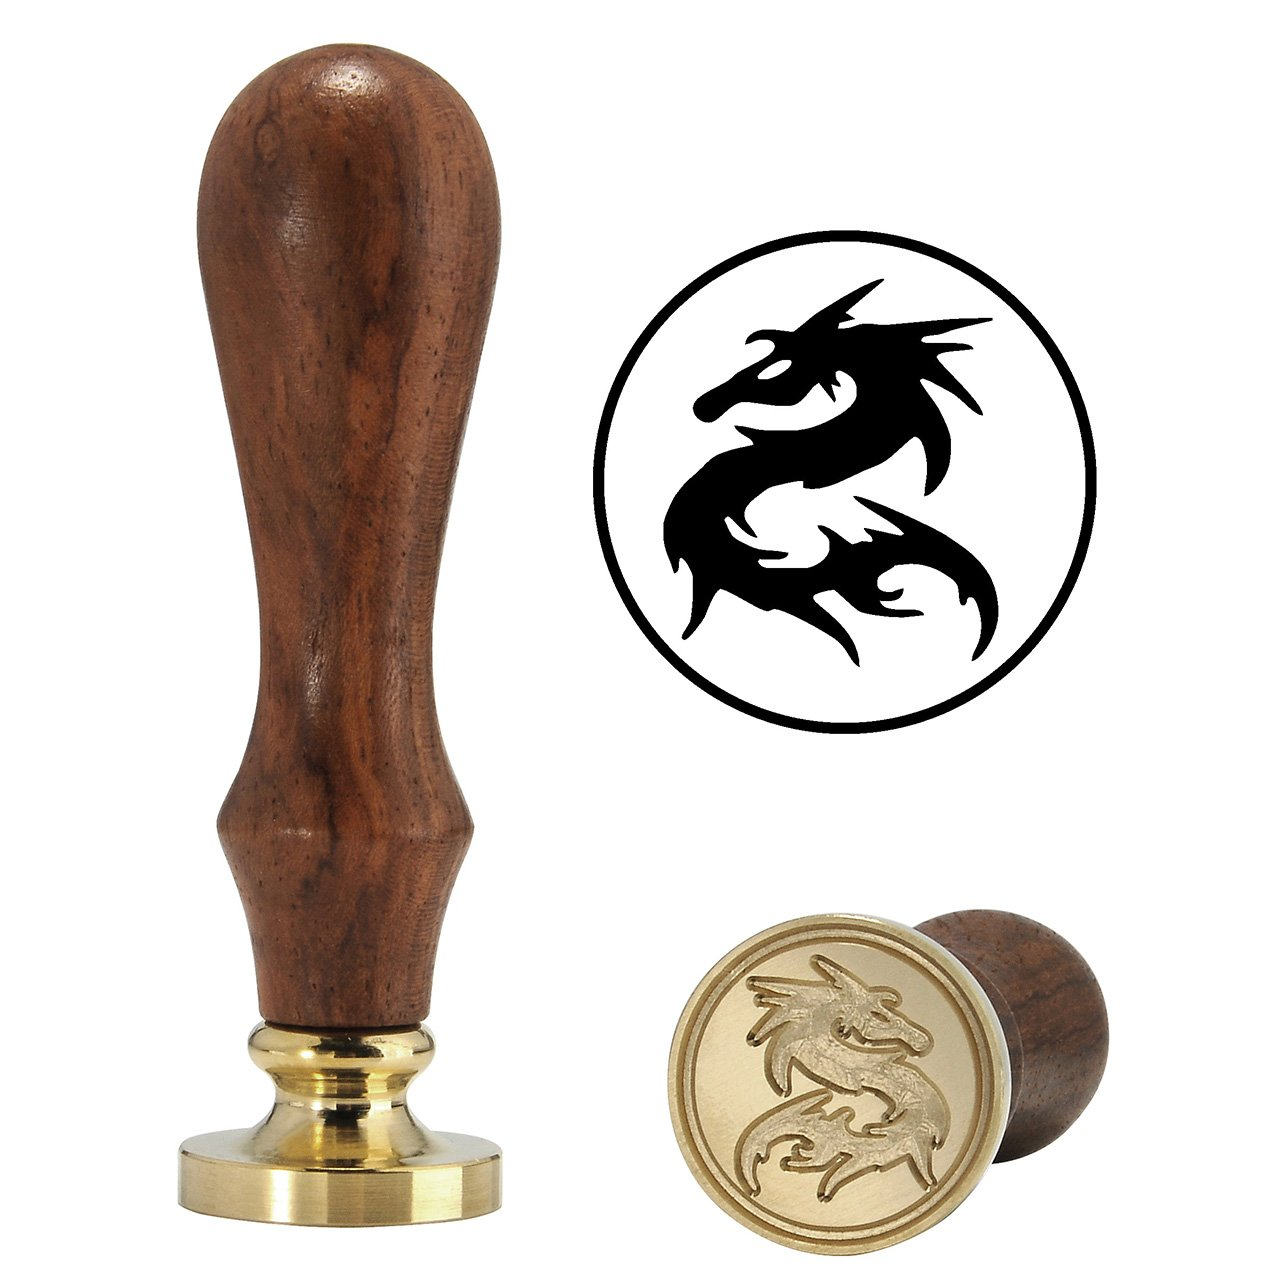 Authoritative Dargon Wax Seal Stamp, Yoption Vintage Retro Authoritative Dargon Sealing Wax Stamp, Great for Embellishment of Cards Envelopes, Invitations, Wine Packages, Ideal Gift (Dargon #1)